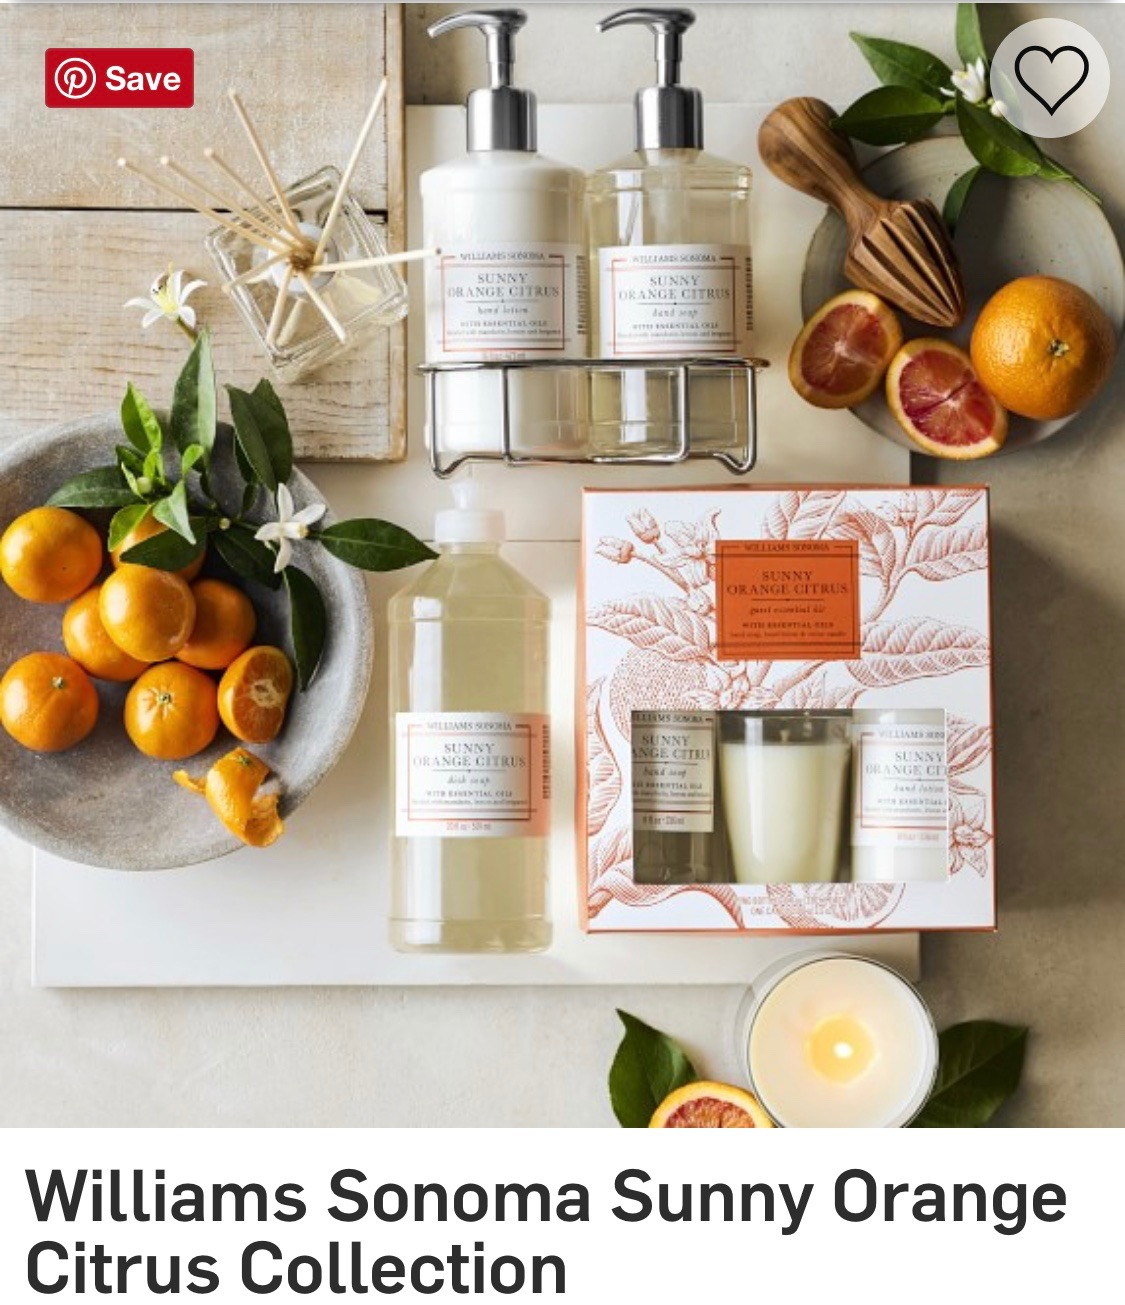 Citrus scents are my most favorites. This set is so pretty and fresh and clean and chic! I love this ideas for any gift...